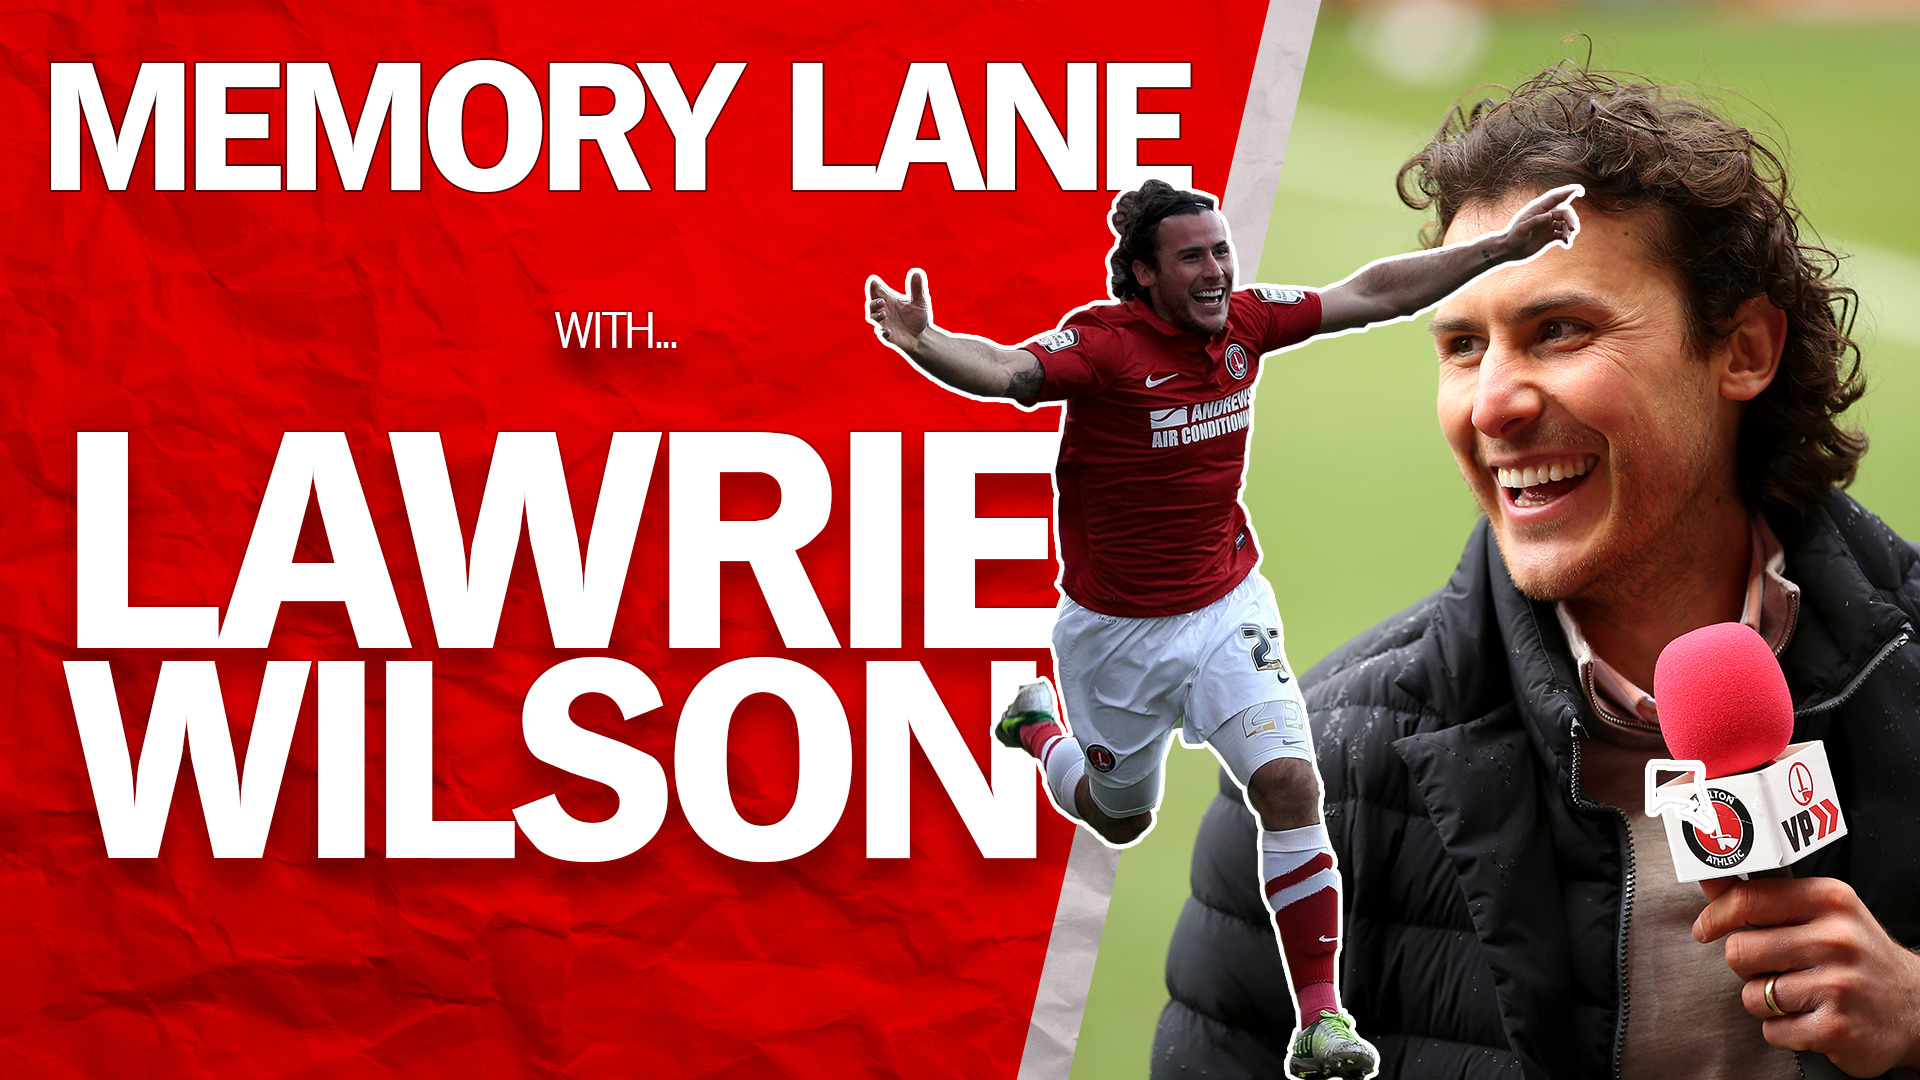 MEMORY LANE | Lawrie Wilson (March 2021)